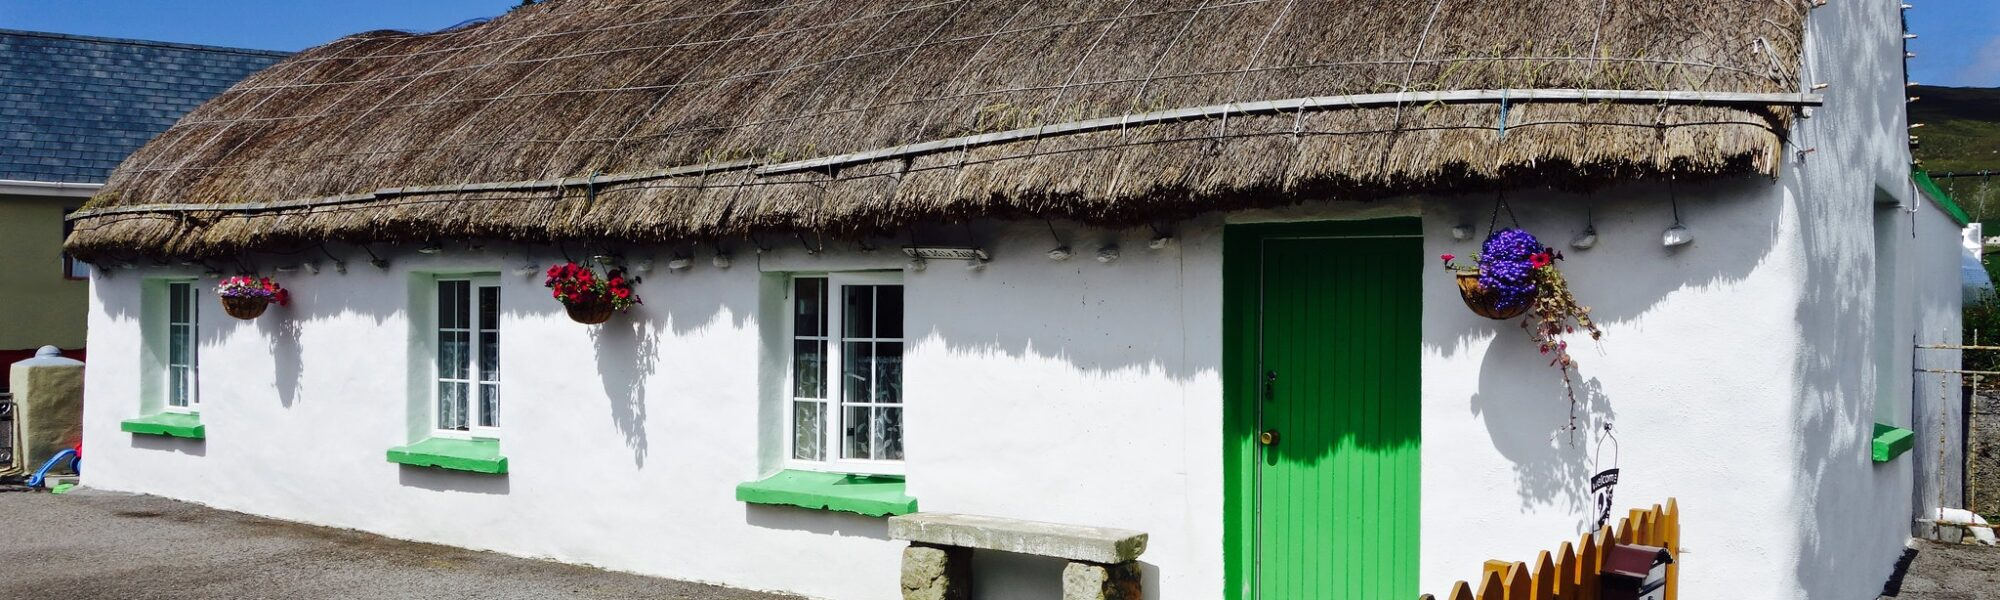 Glencolmcille Folk Village - Lynn Gallagher - cc